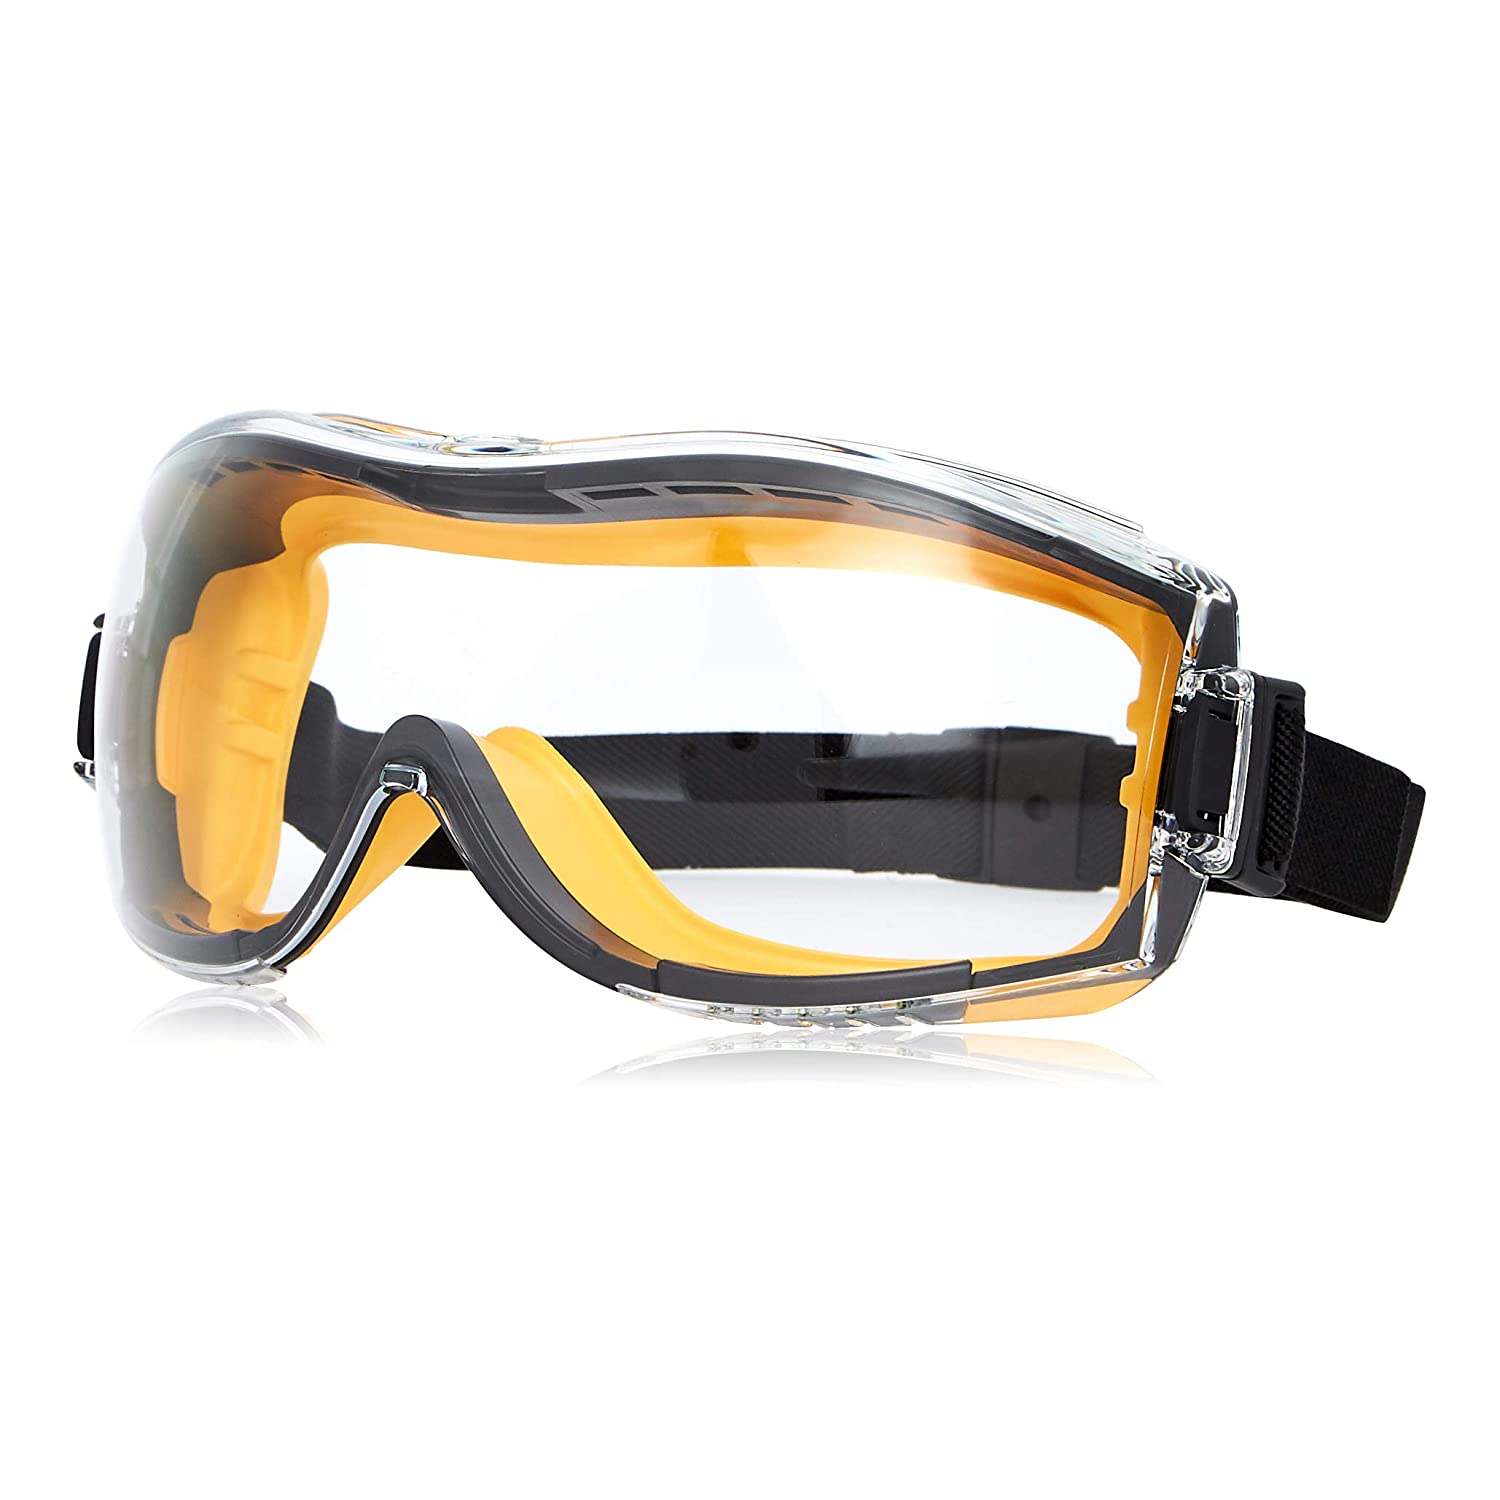 Max 89% OFF Amazon Basics Safety Goggle - Lens Clear Anti-Fog 1QP158A1 Reservation and